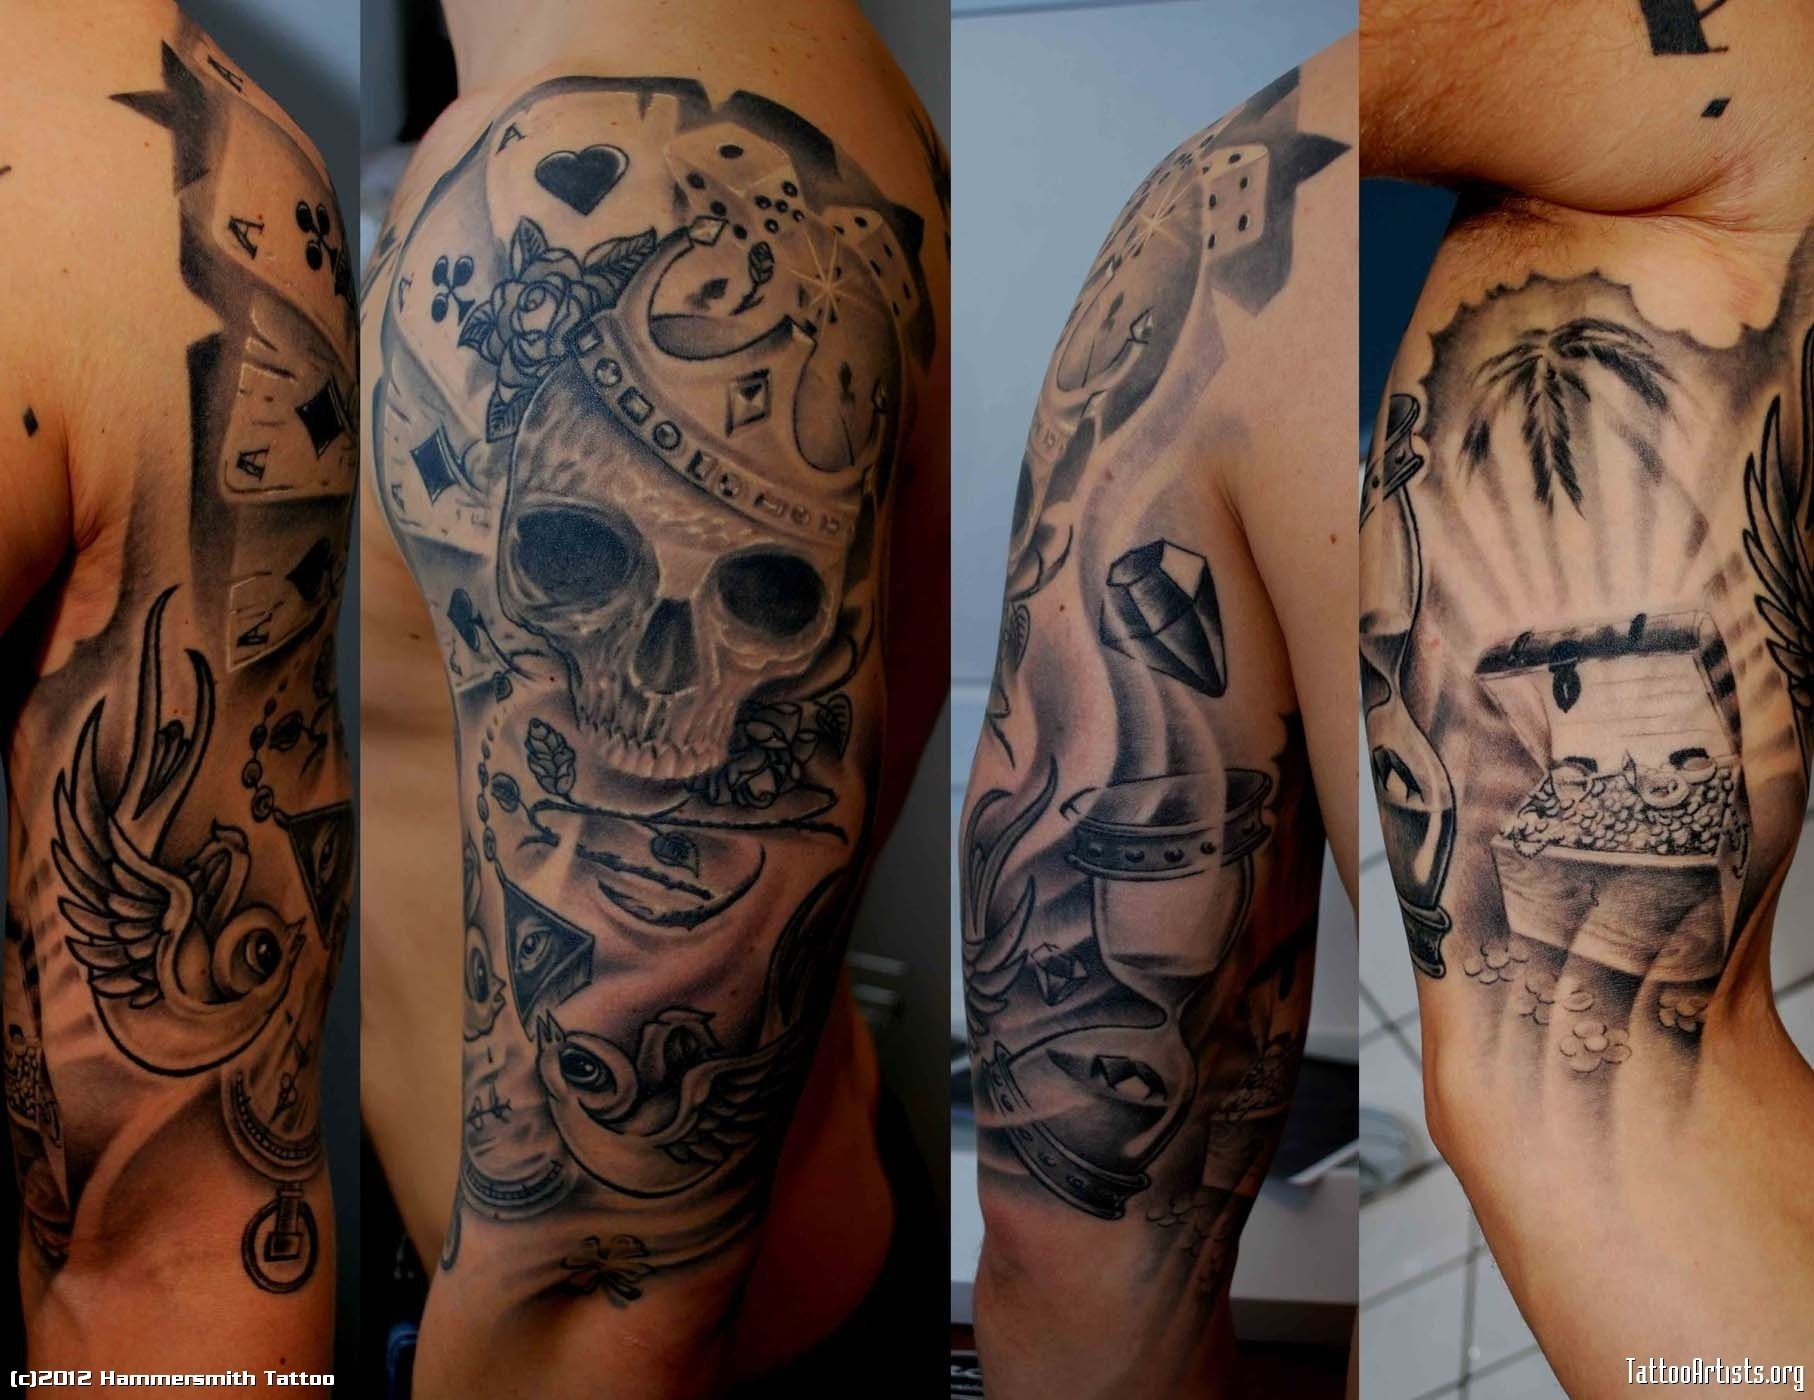 10 Most Recommended Black And Grey Tattoo Ideas black and grey koi fish sleevefull tattoo sleeves google search 1